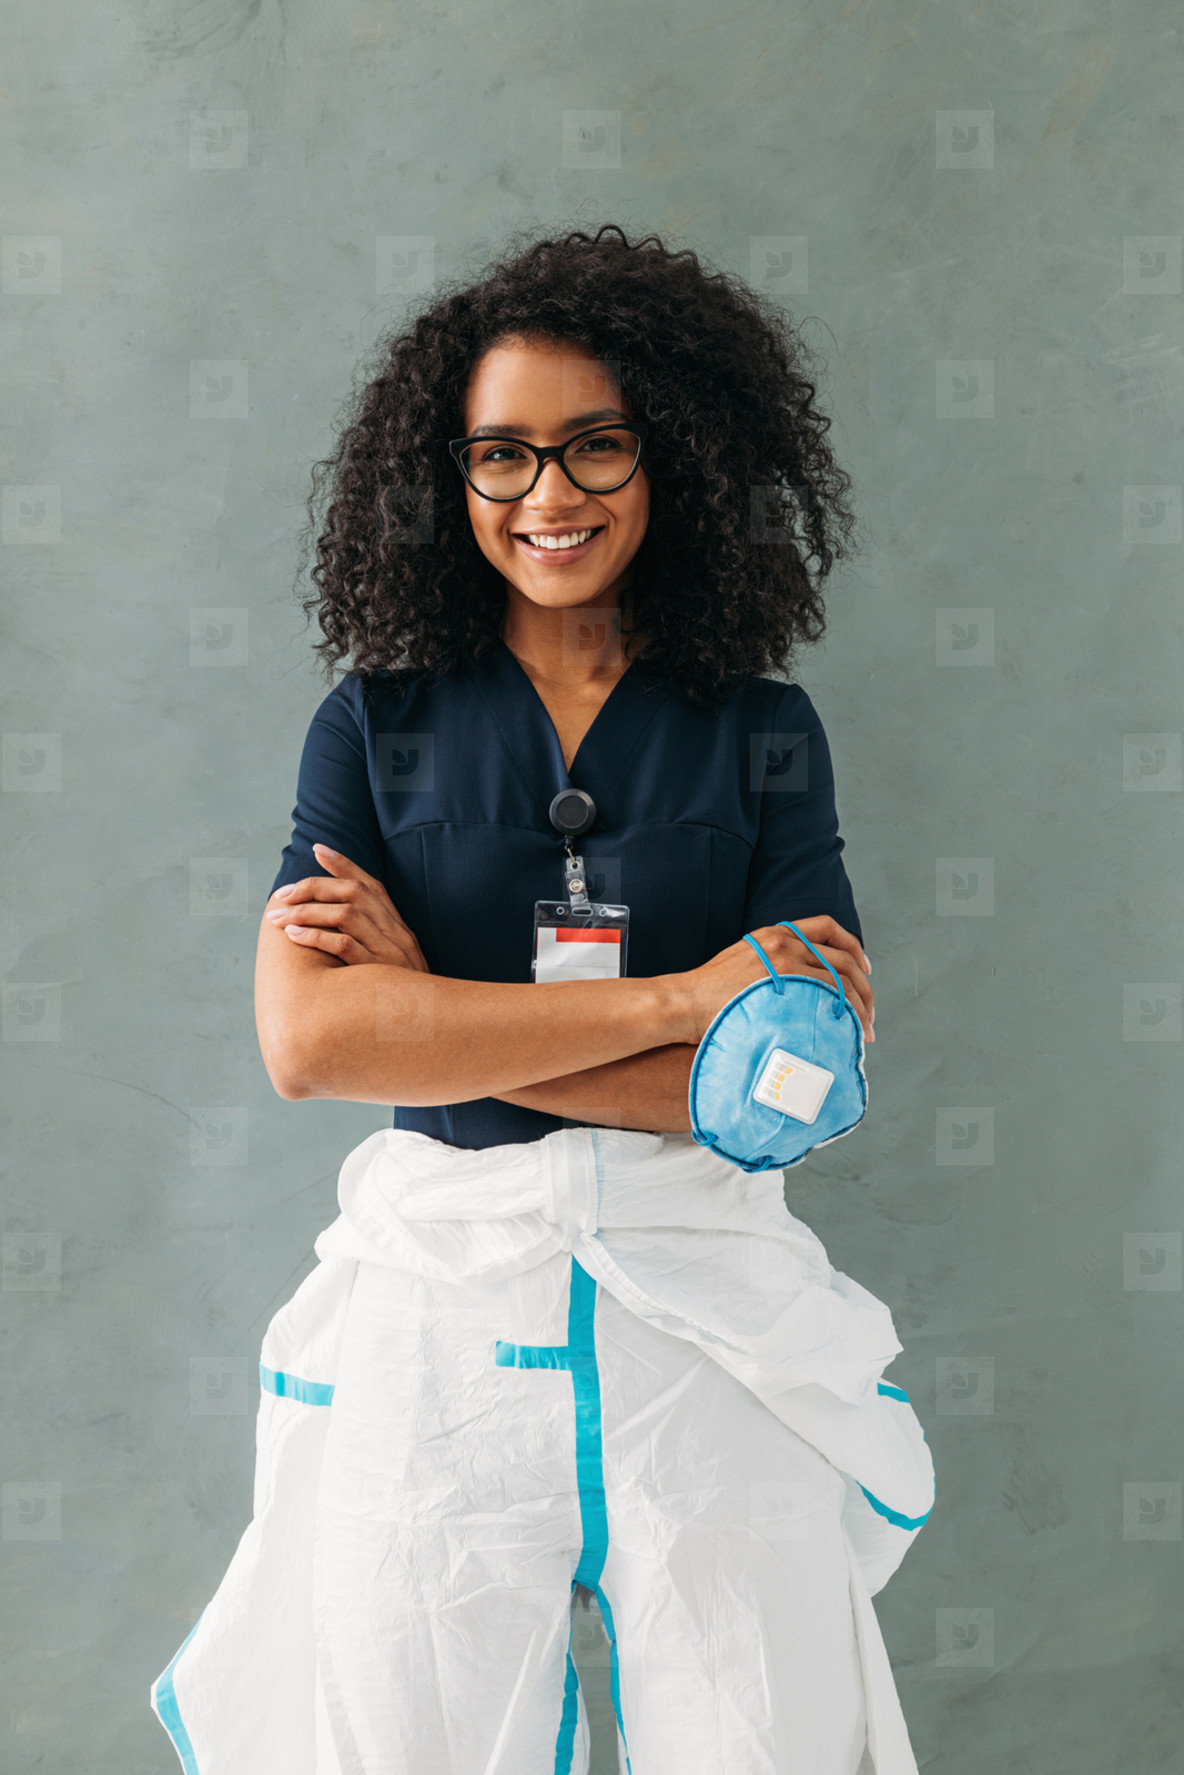 Smiling nurse standing at wall